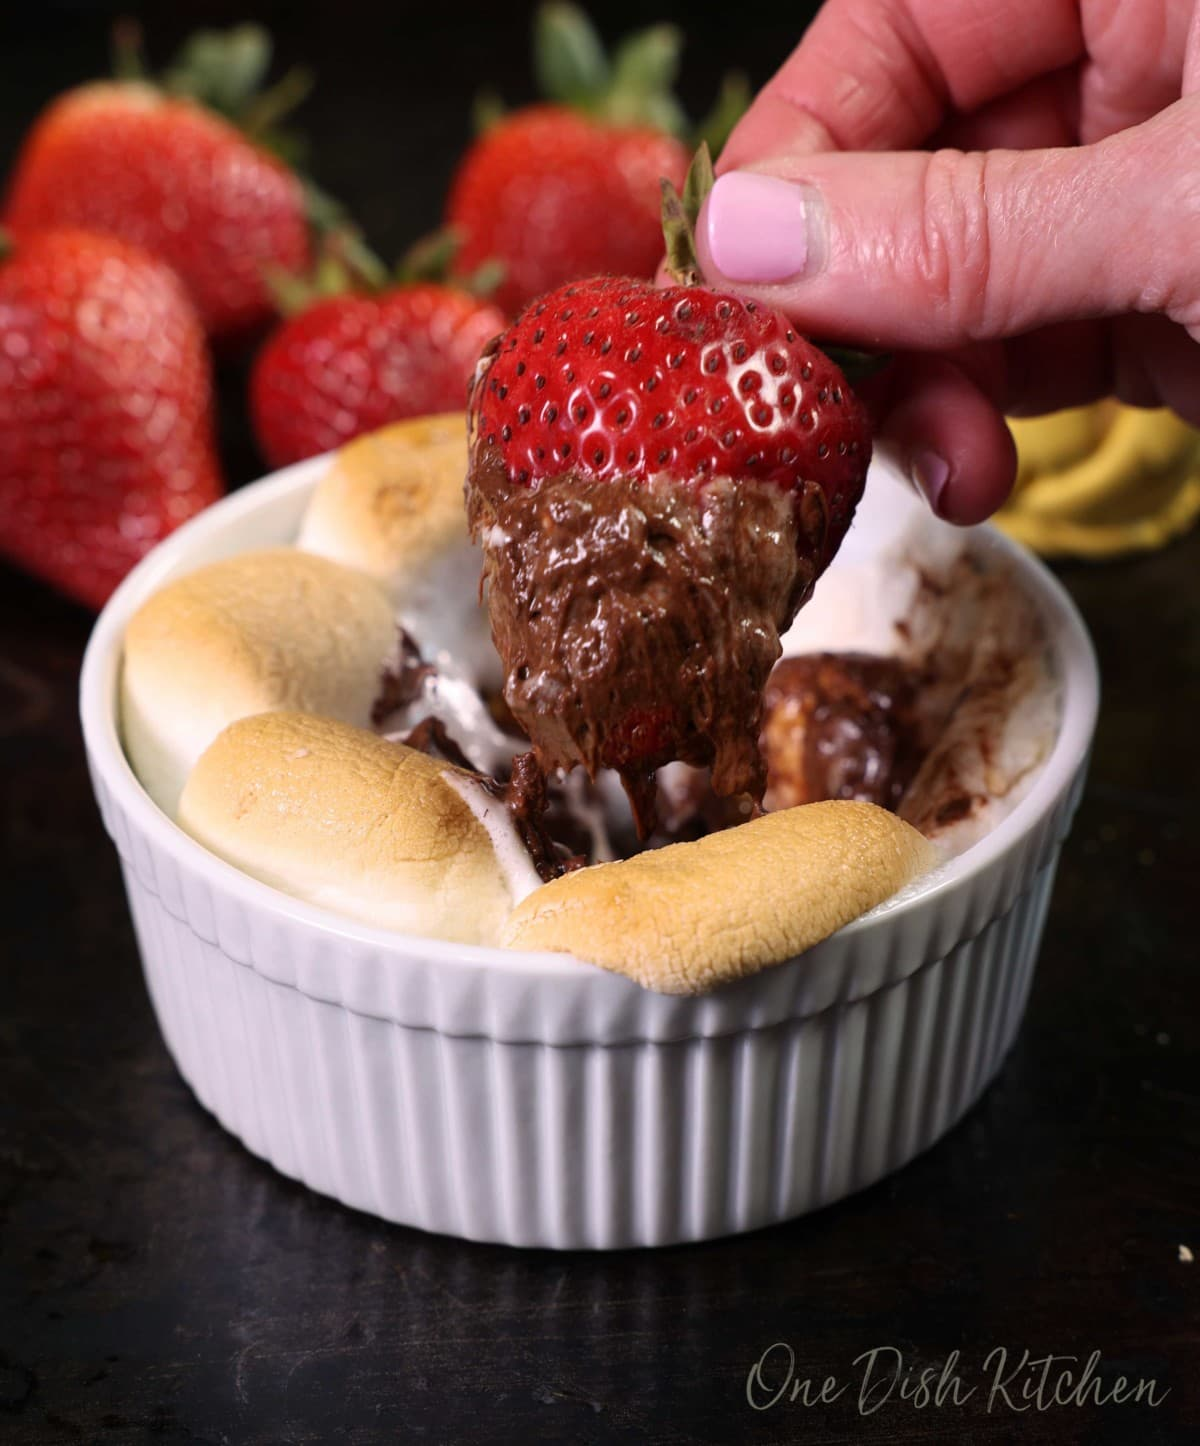 a strawberry dipped in chocolate and marshmallows